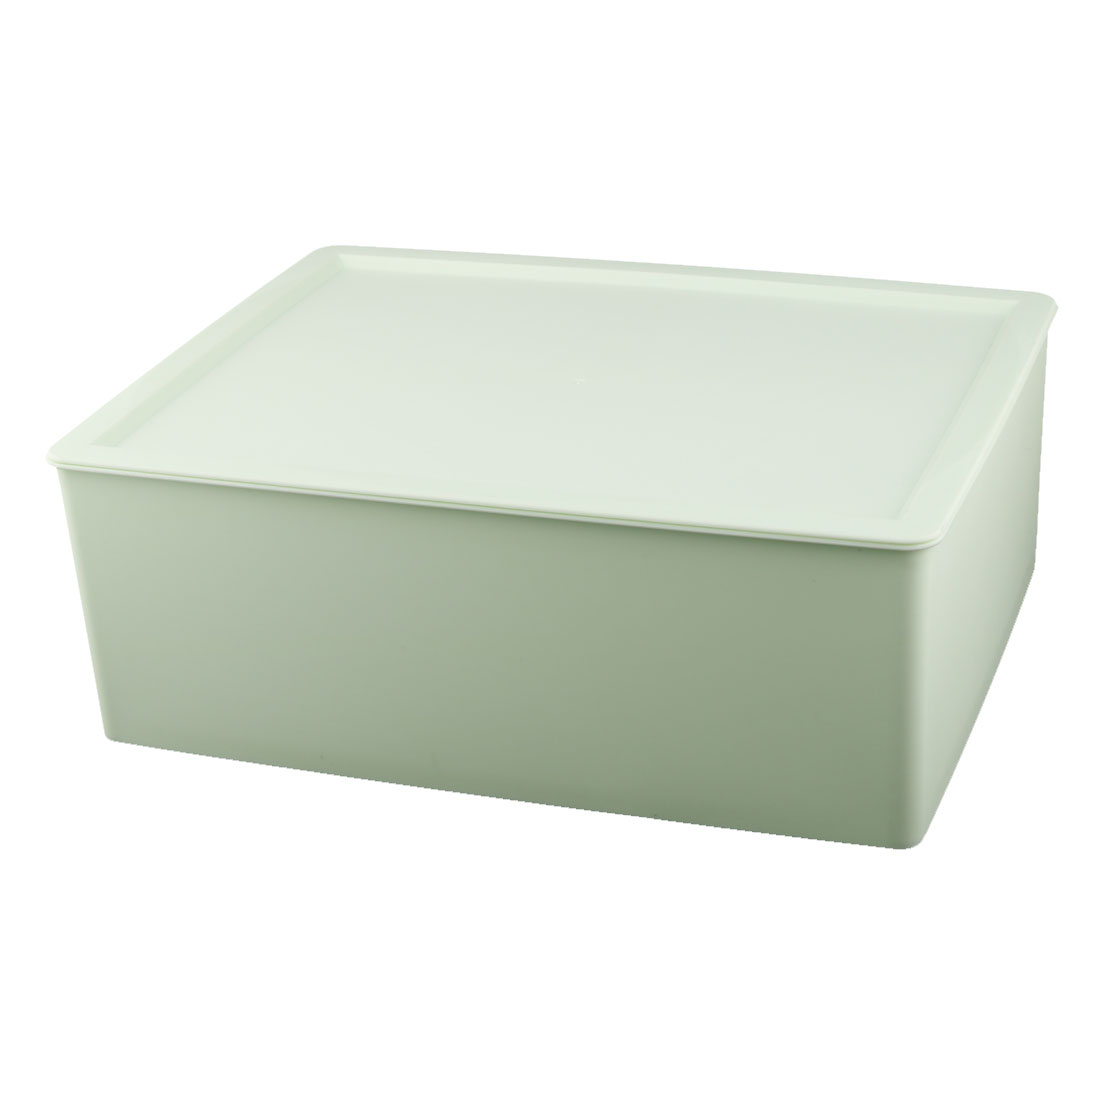 Family Dresser Plastic Trinket Cosmetic Underwear Holder Desk Storage Box Pale Green